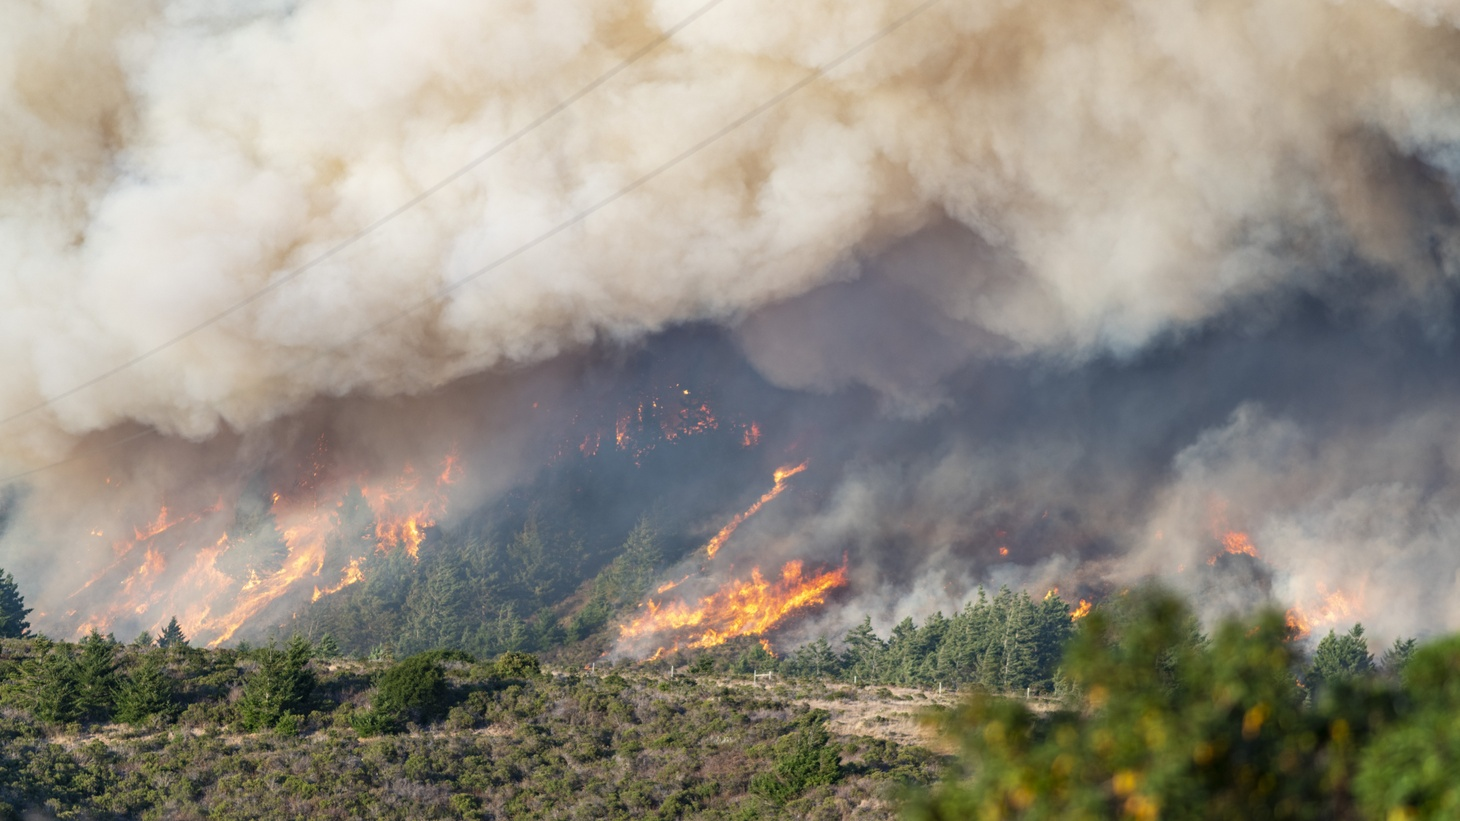 Smoke and flames rise from the mountains in Pescadero, California, United States on August 19, 2020. Multiple large lightning strikes on August 16 caused fires in southern San Mateo County and northern Santa Cruz County.